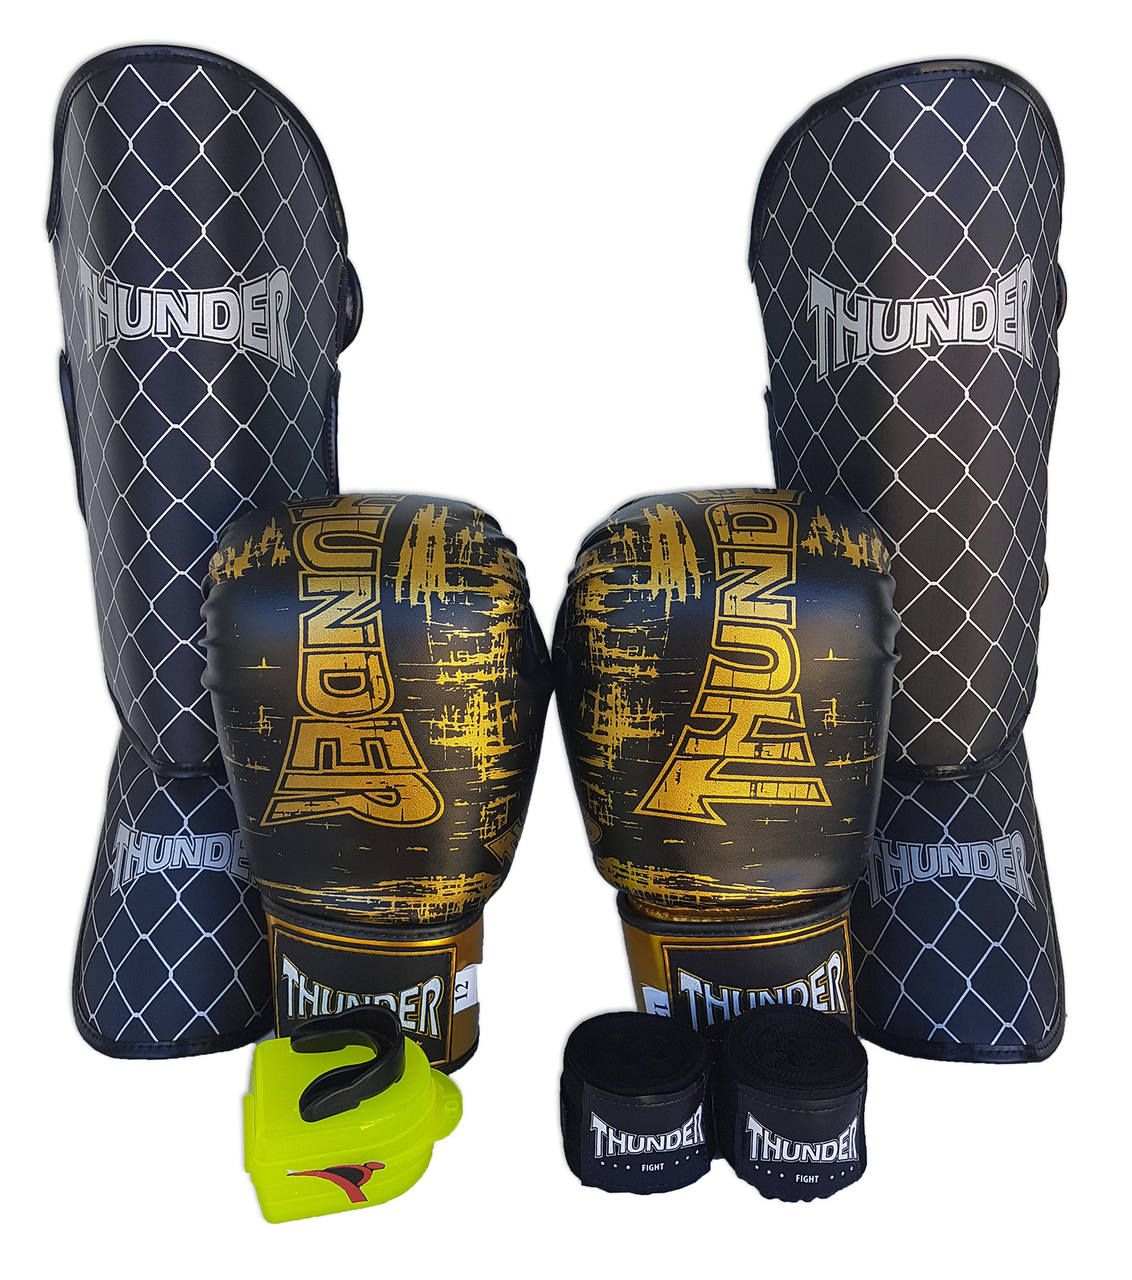 Kit de Muay Thai / Kickboxing 14oz - Preto - Thunder Fight  - PRALUTA SHOP